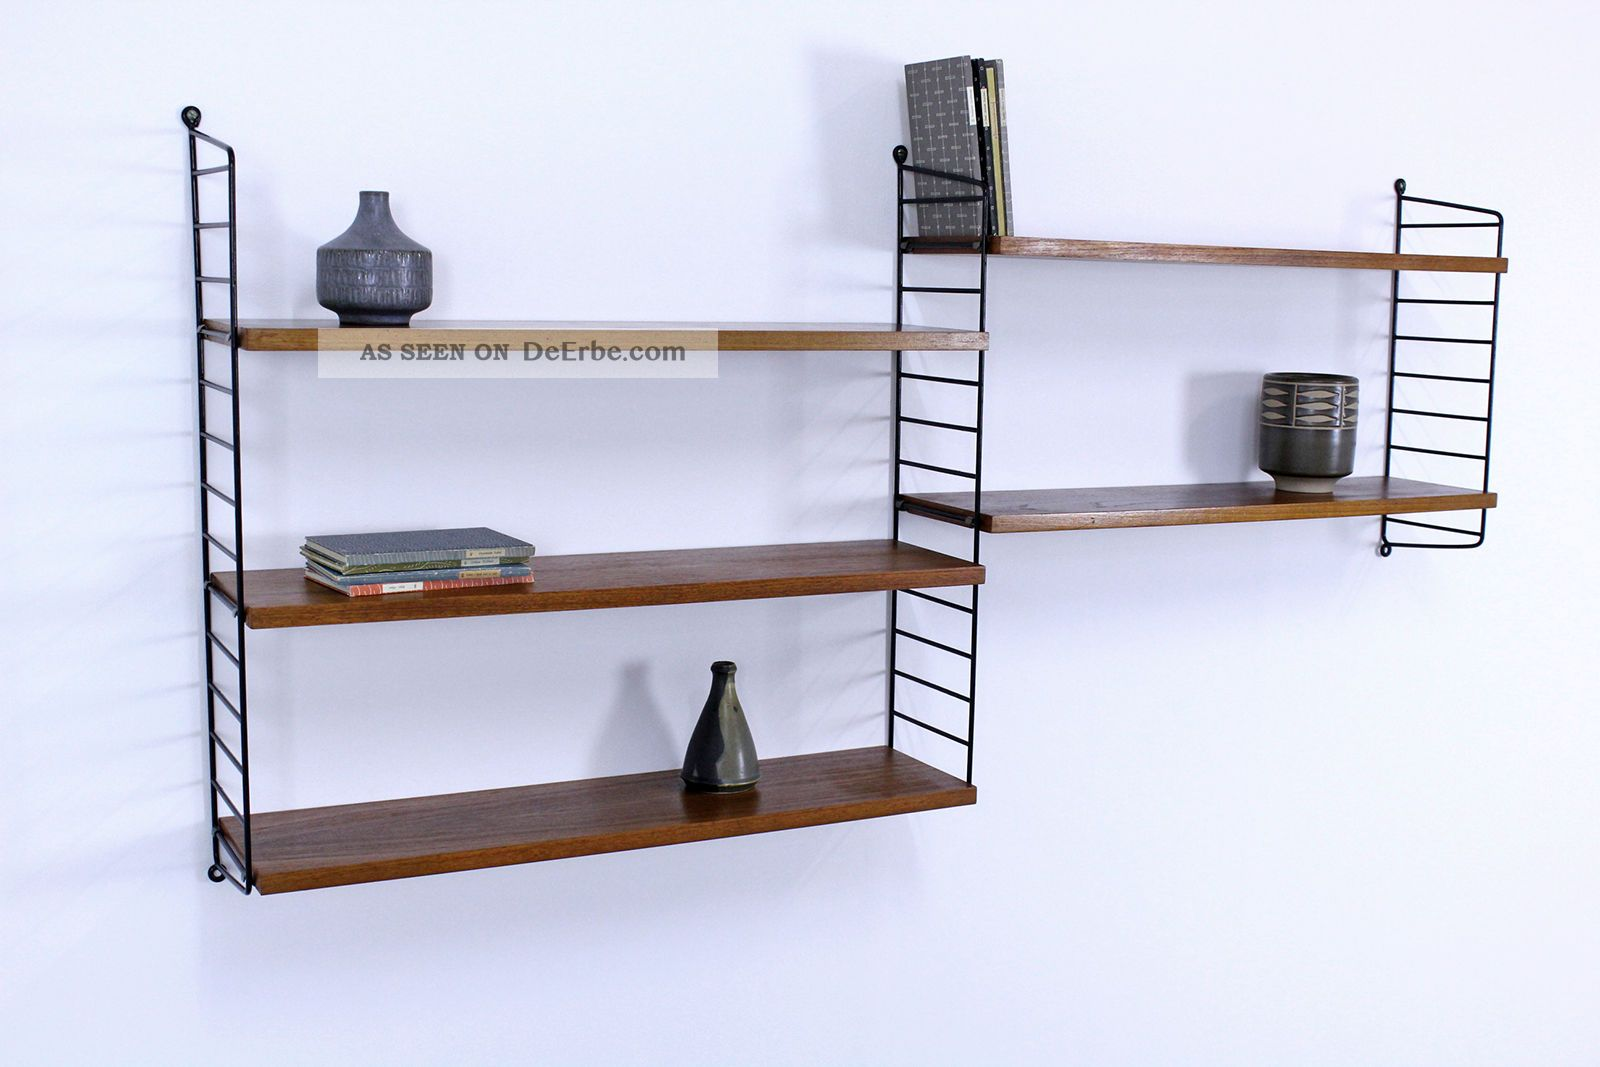 regal system string teak nisse strinning sweden shelving system no2. Black Bedroom Furniture Sets. Home Design Ideas